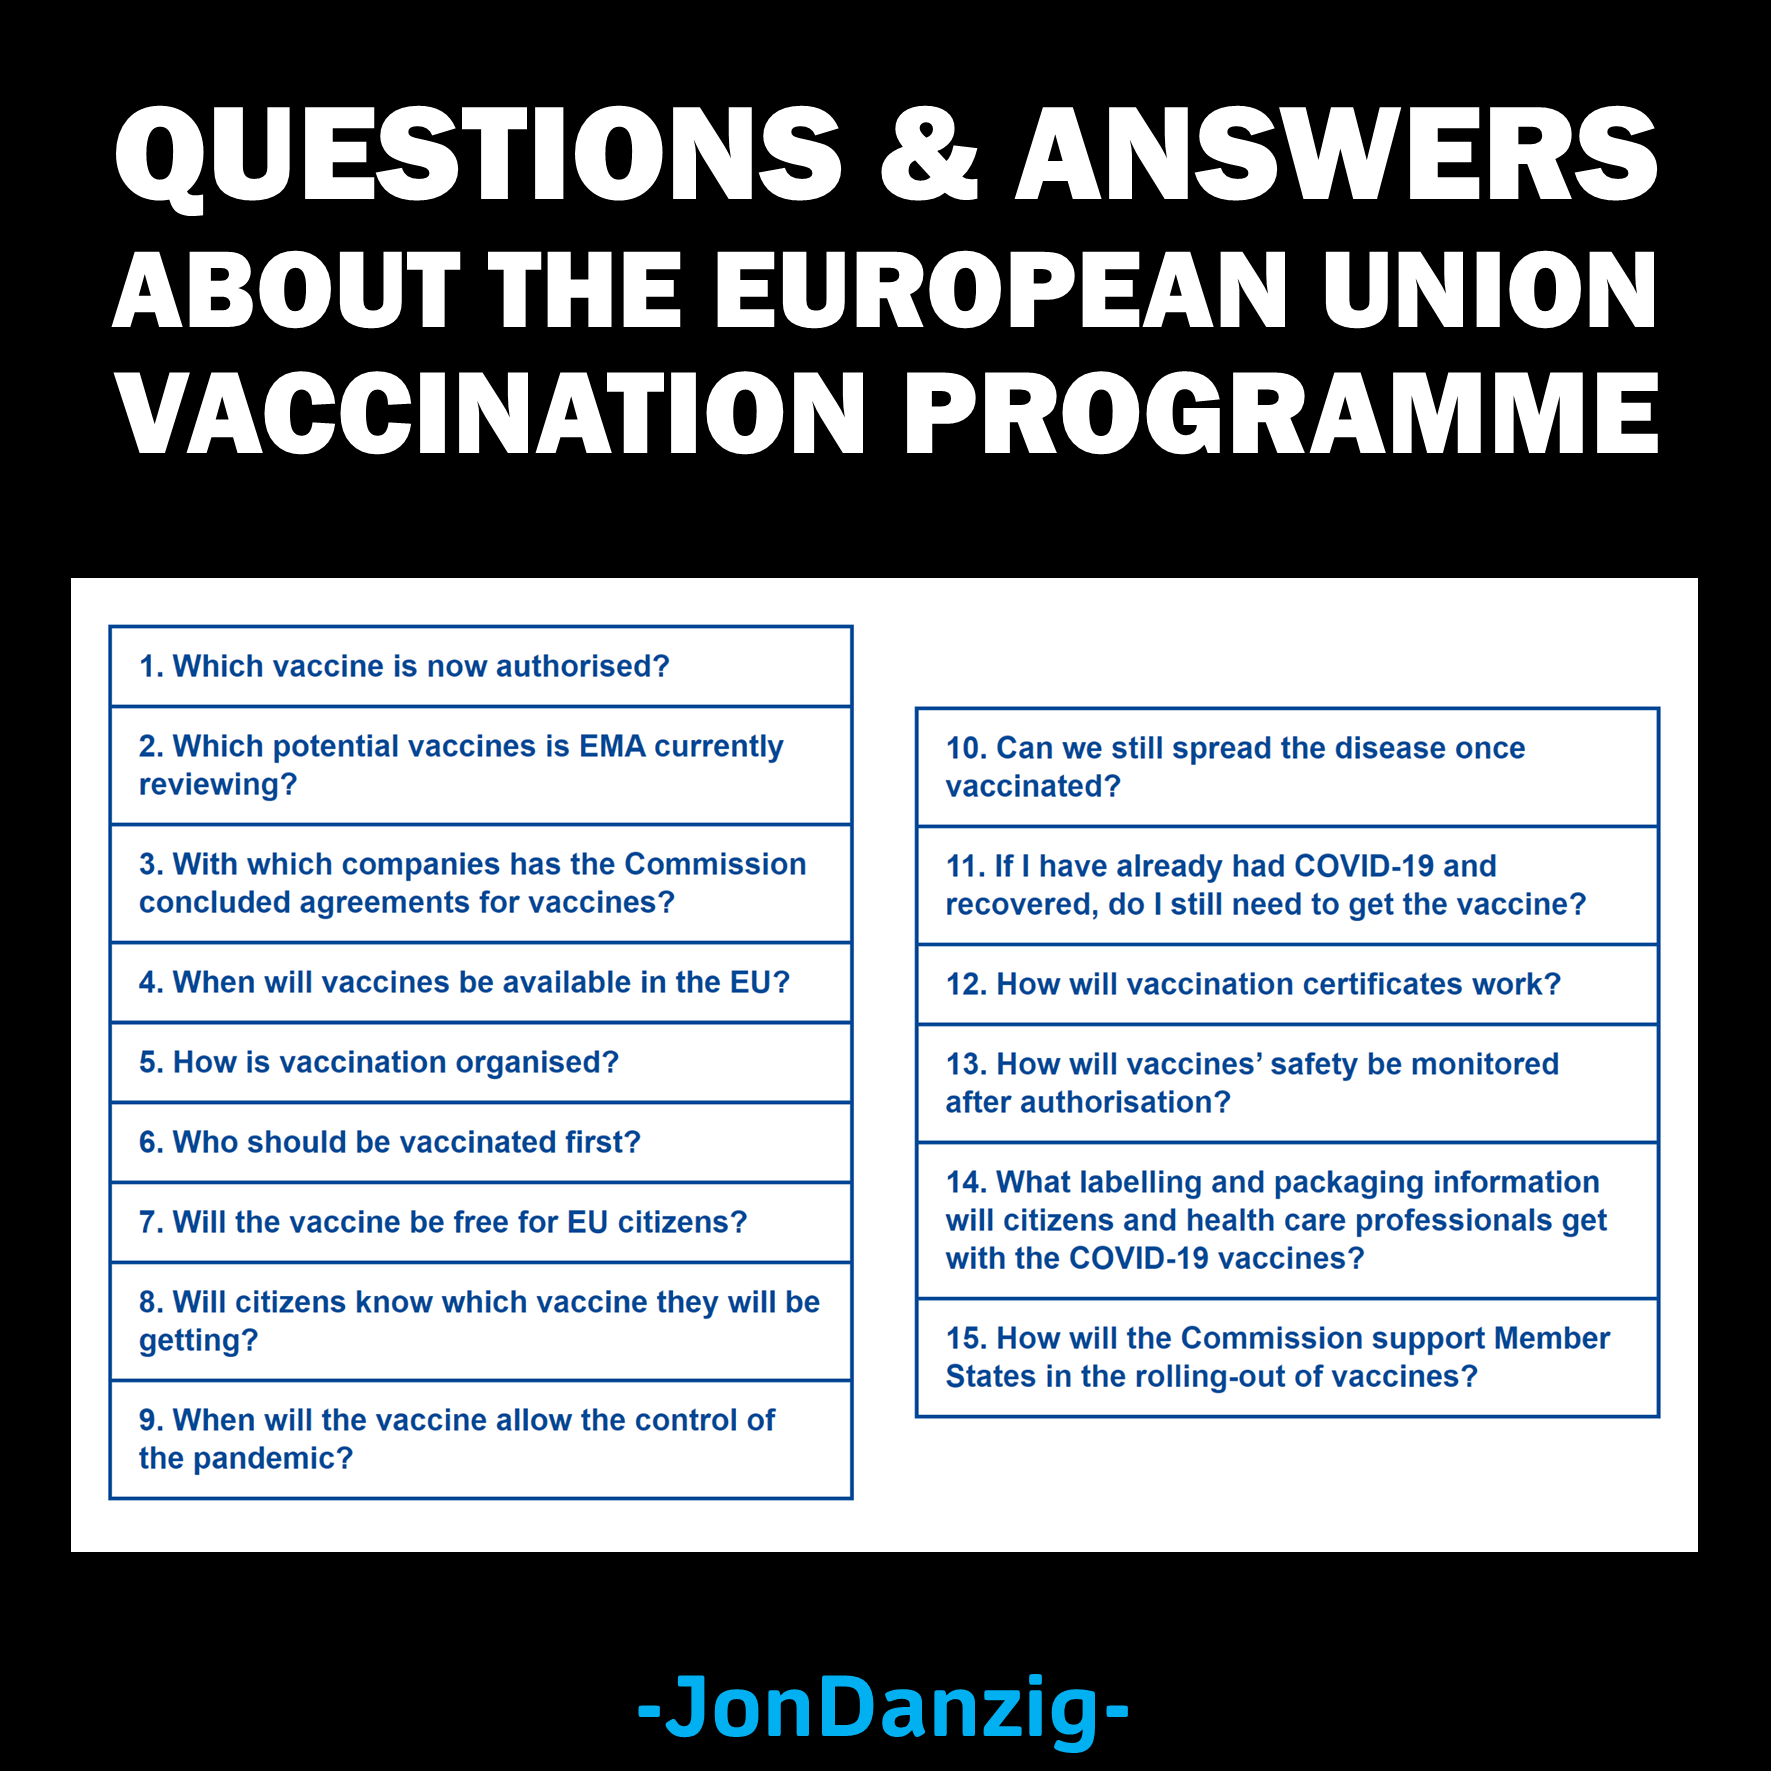 Don't rely on inaccurate gossip about the EU vaccine strategy